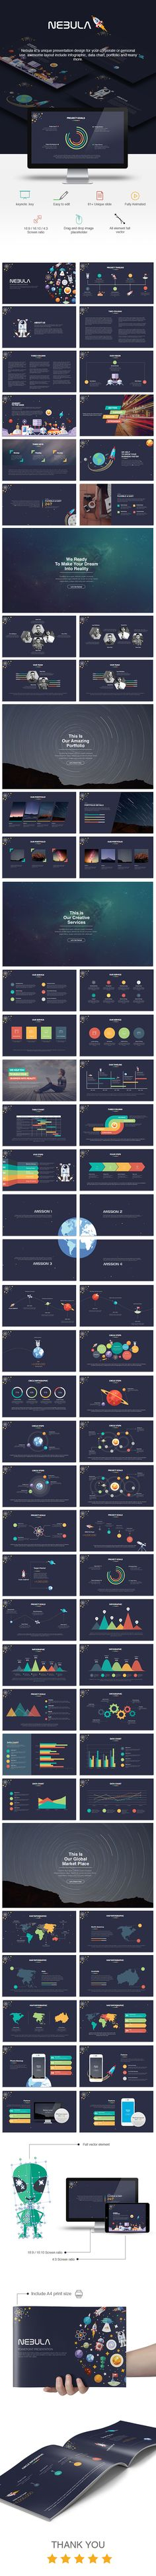 Nebula Keynote Presentation Template #design #slides Download: http://graphicriver.net/item/nebula-keynote-presentation/13816962?ref=ksioks